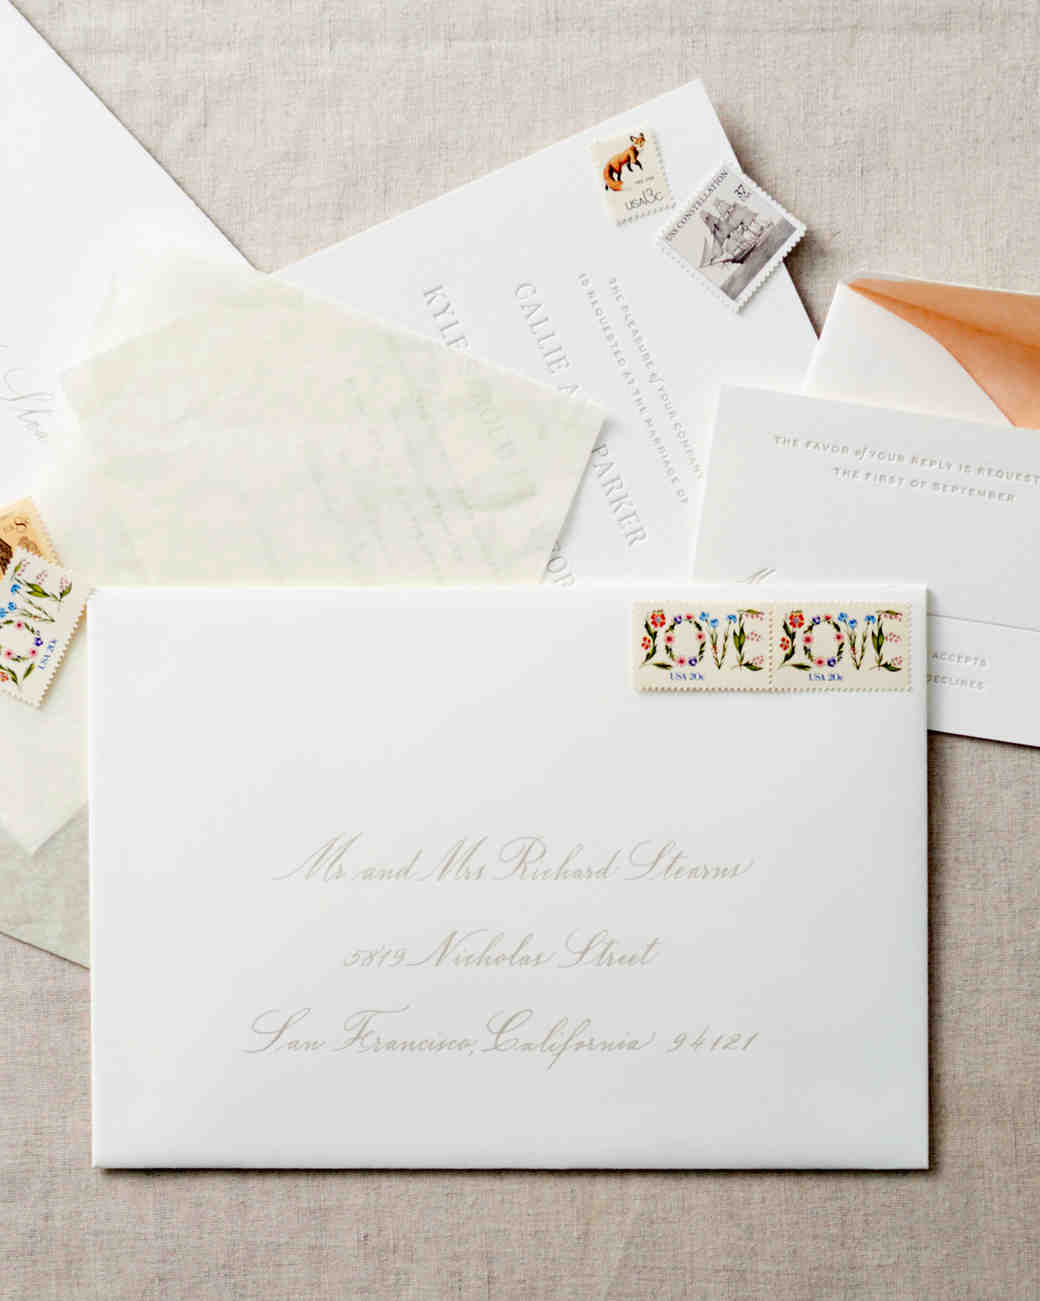 how to address guests on wedding invitation envelopes martha stewart weddings - Wedding Invitation Wording Etiquette